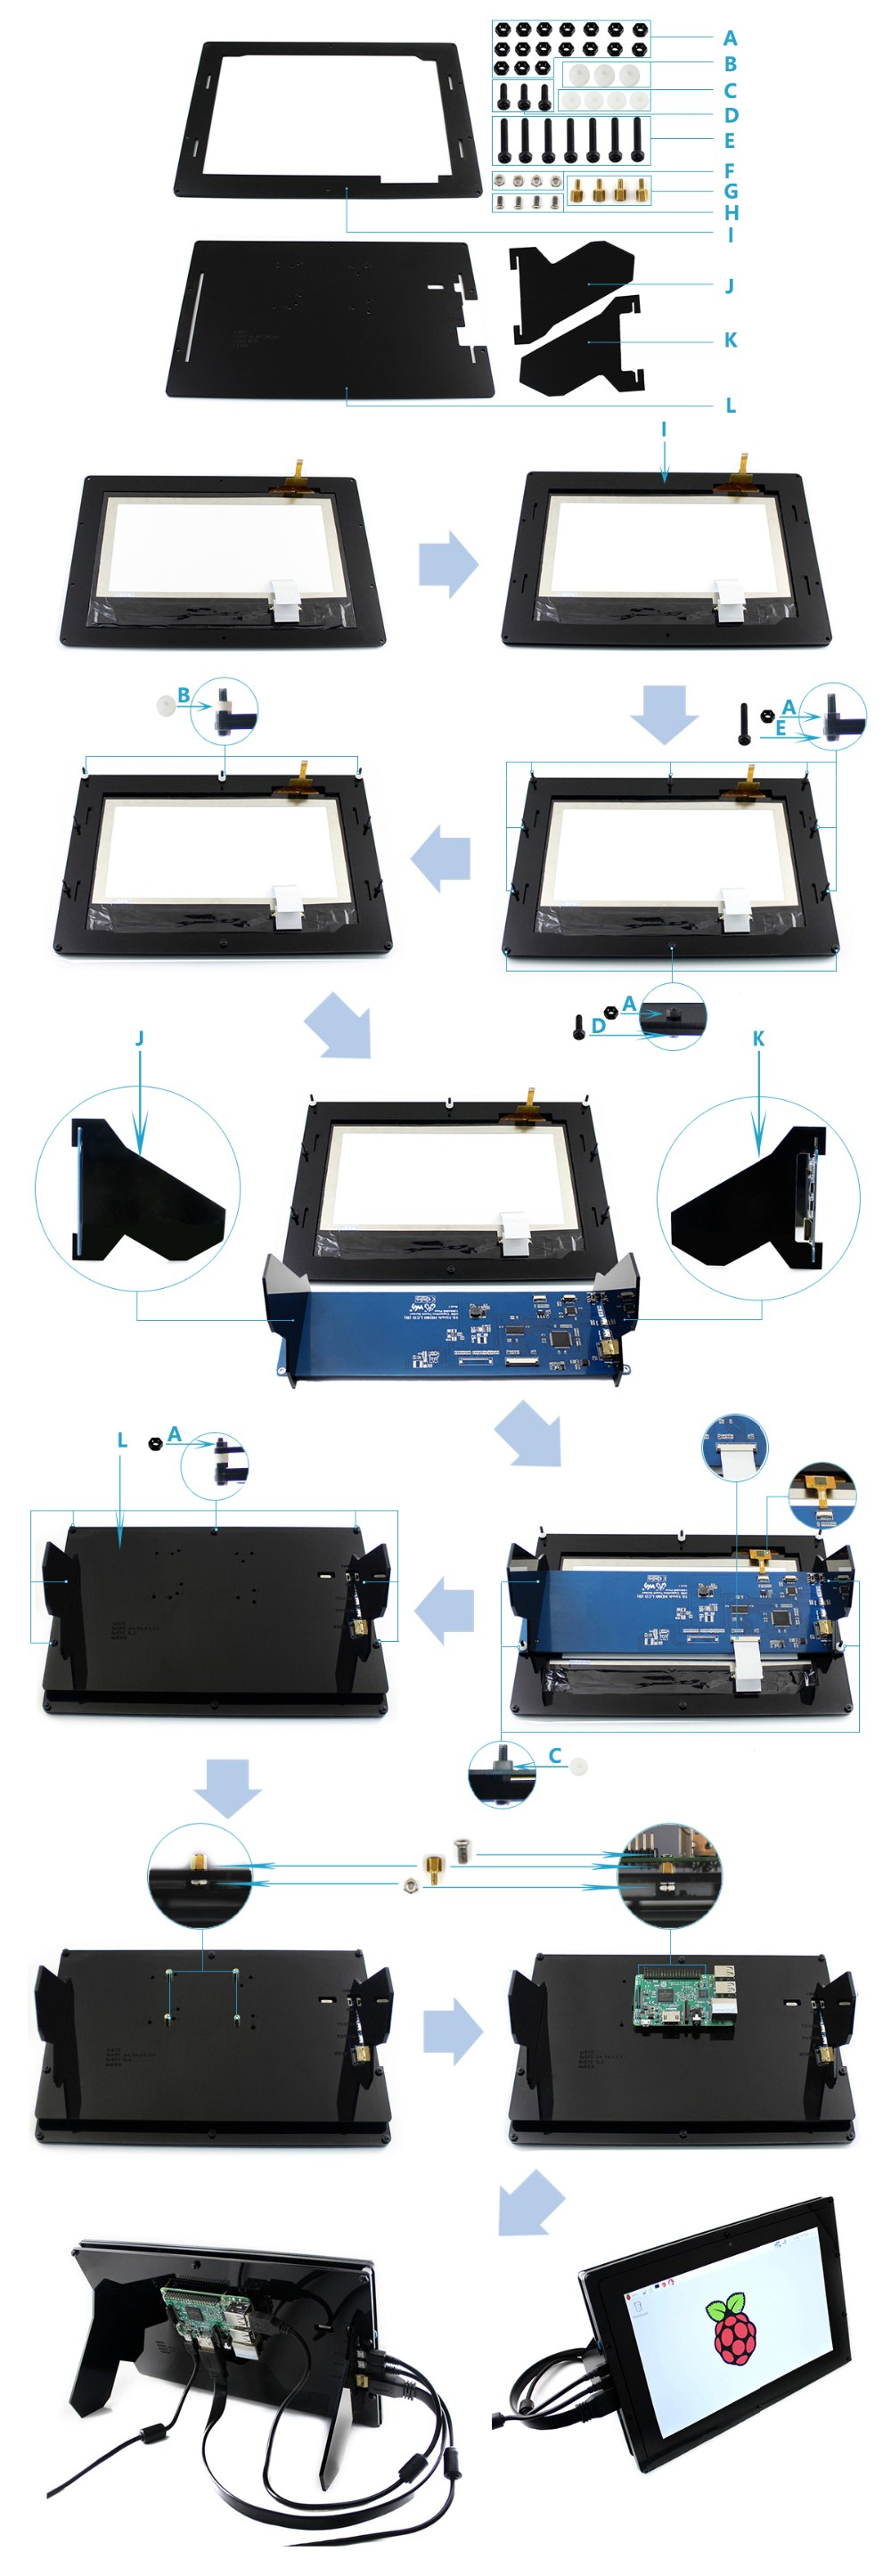 10.1inch-HDMI-LCD-B-with-Holder-assemble